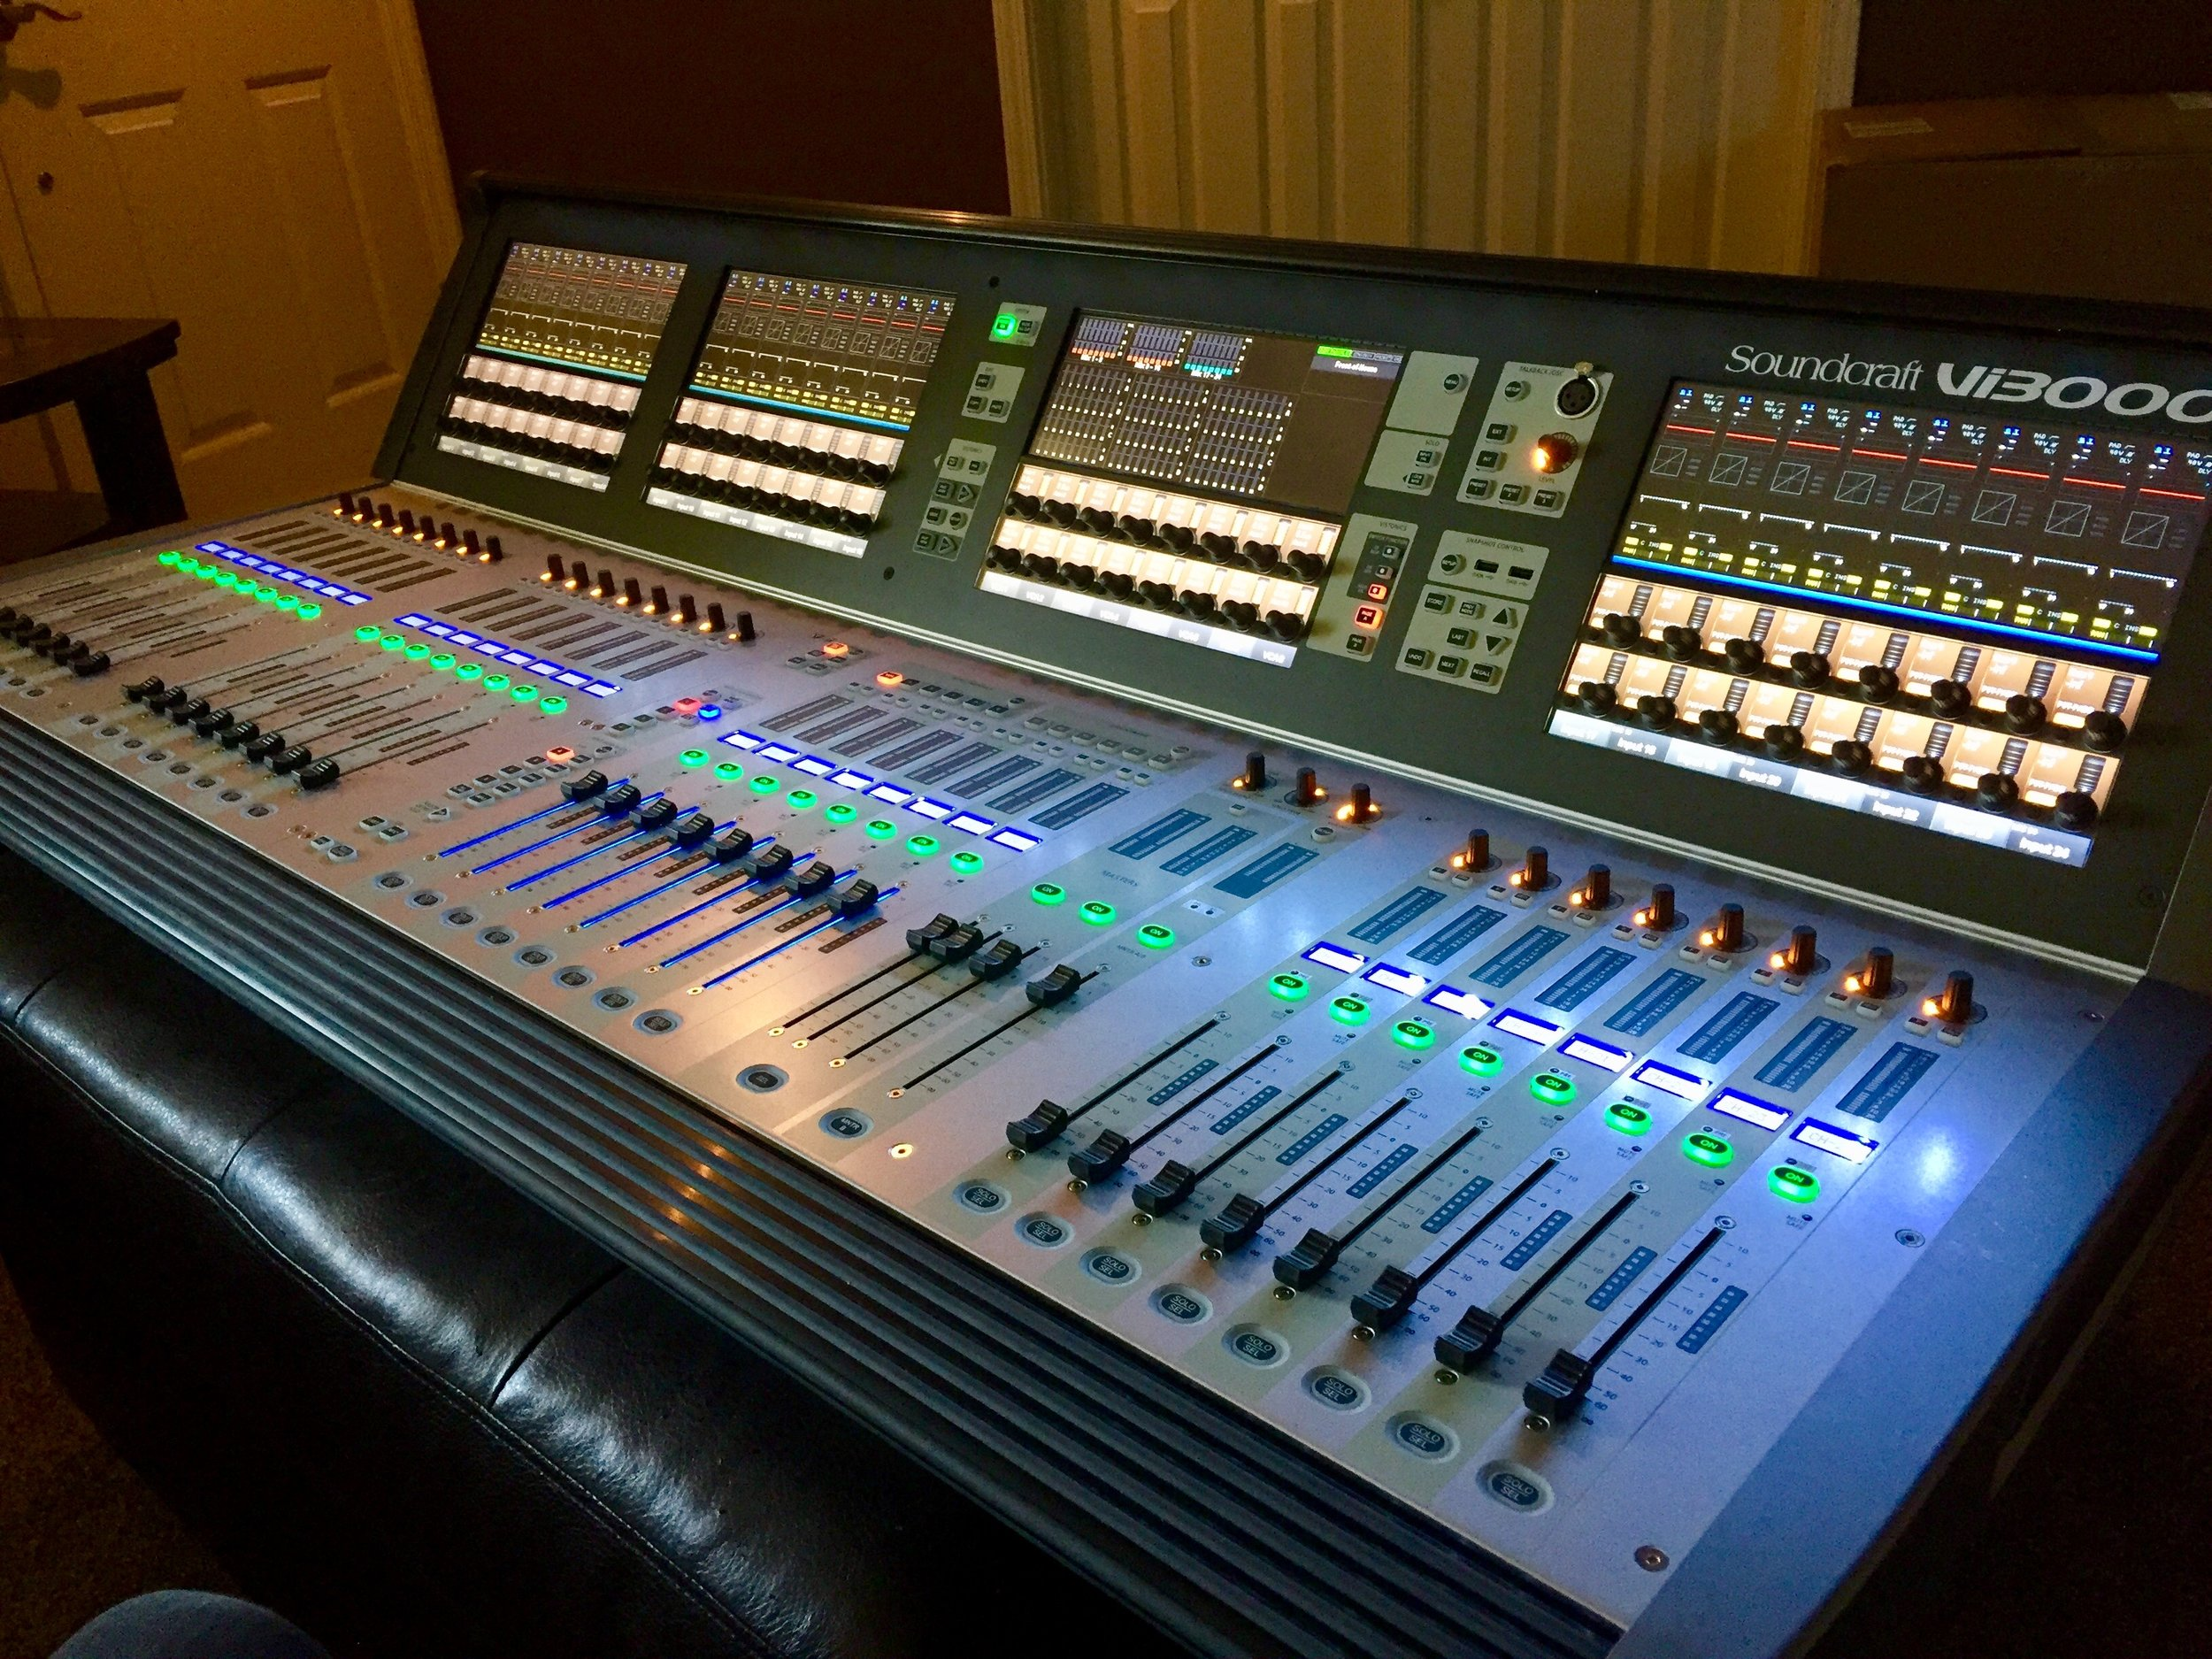 A great addition to our current inventory of sound. Looking forward to using this 96 channel touchscreen monster.